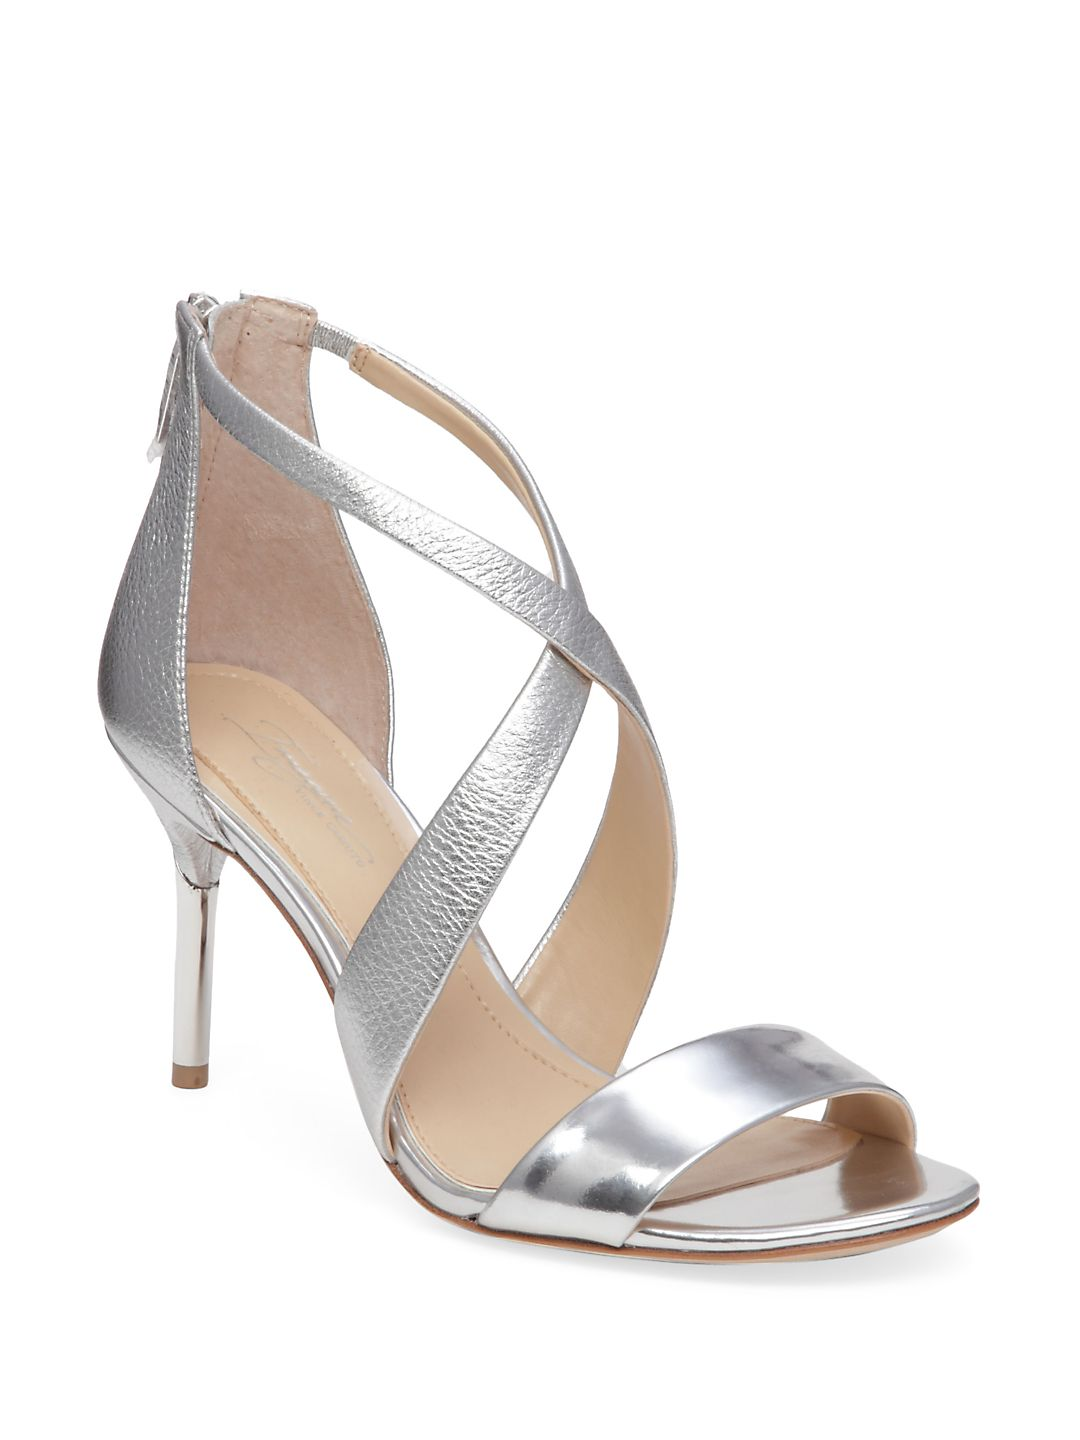 Pascal2 Cross-Strap Tumbled Metallic Leather Sandals